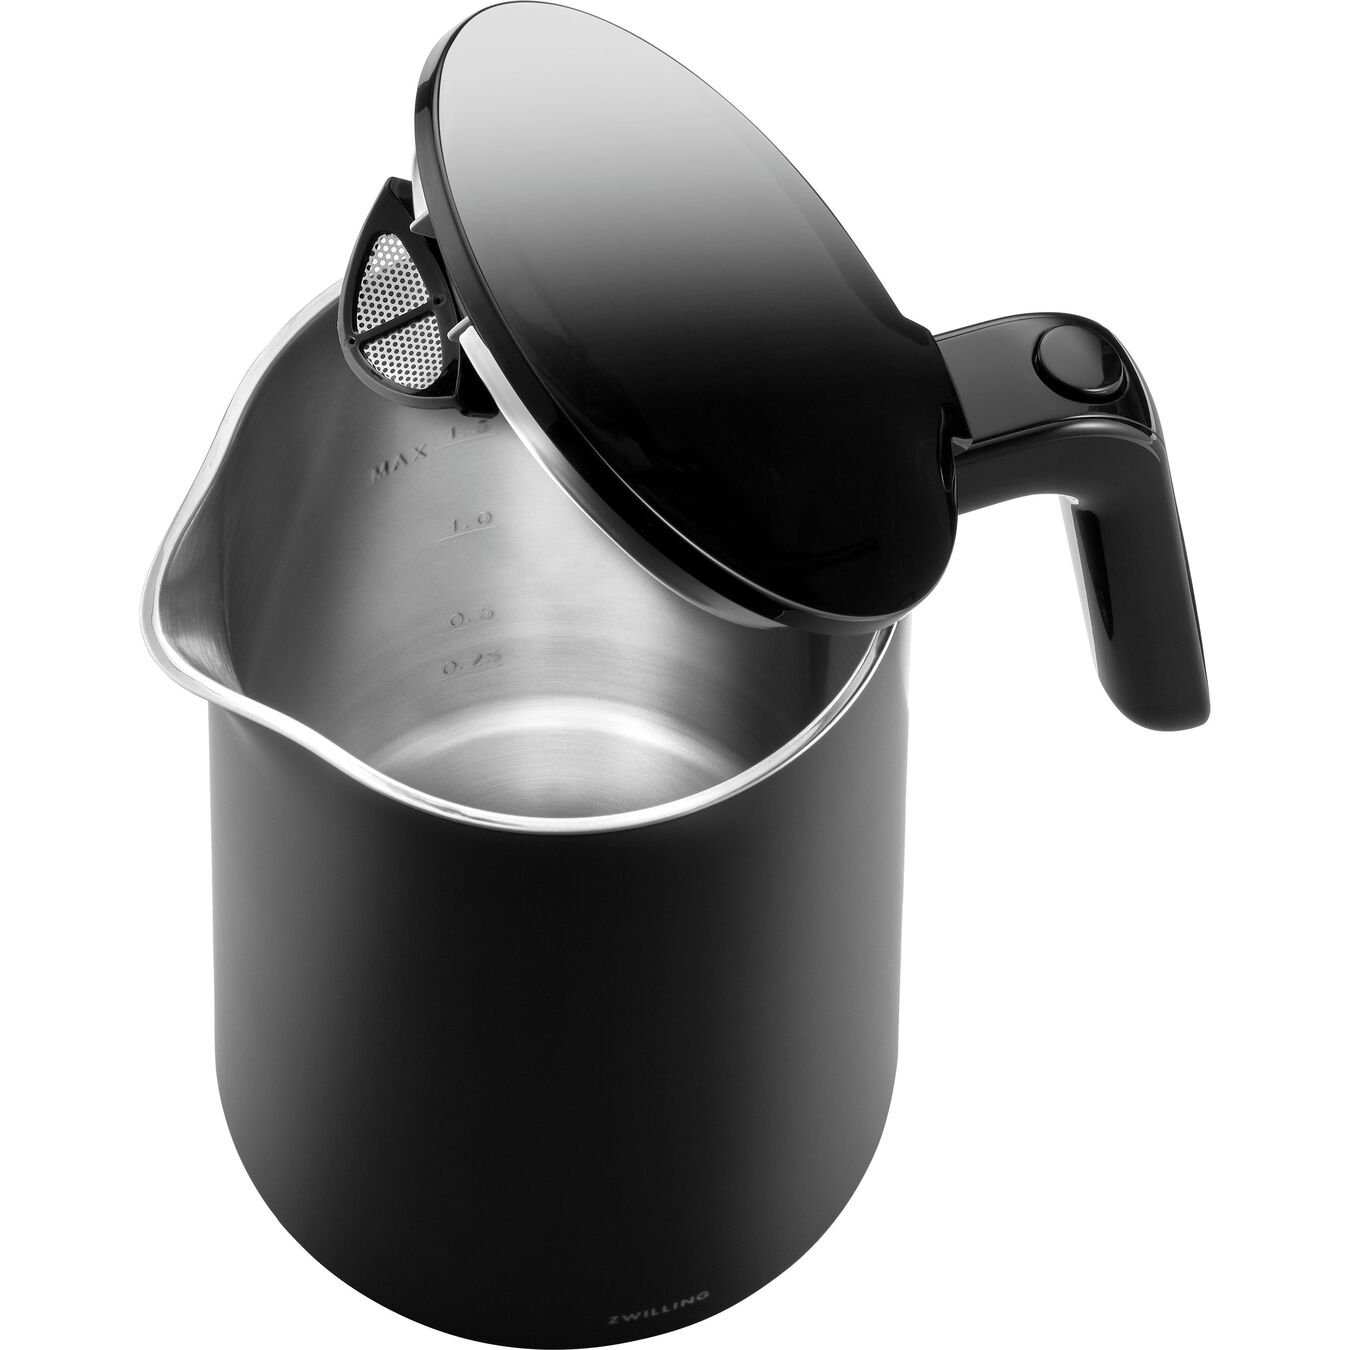 Cool Touch Kettle Pro - Black,,large 6